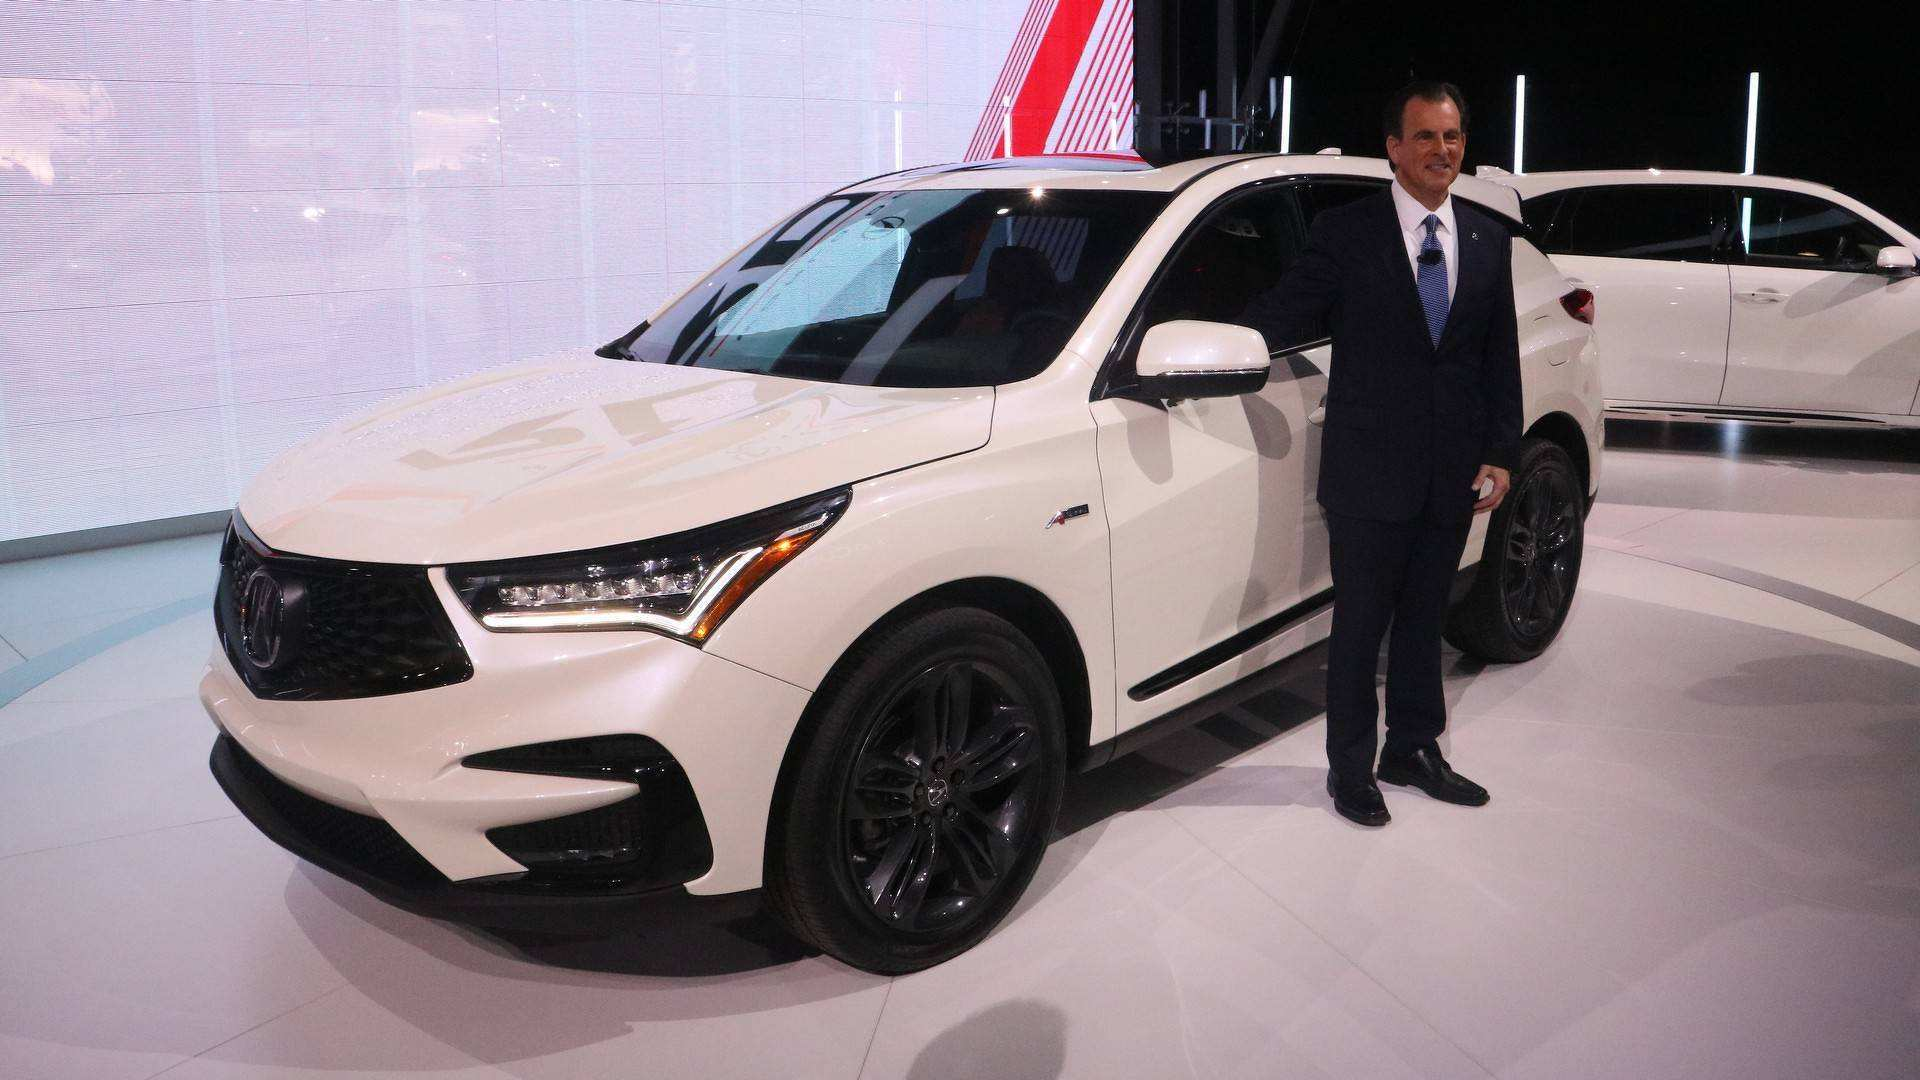 42 All New The Acura Rdx 2019 Release Date Usa Spy Shoot Price by The Acura Rdx 2019 Release Date Usa Spy Shoot